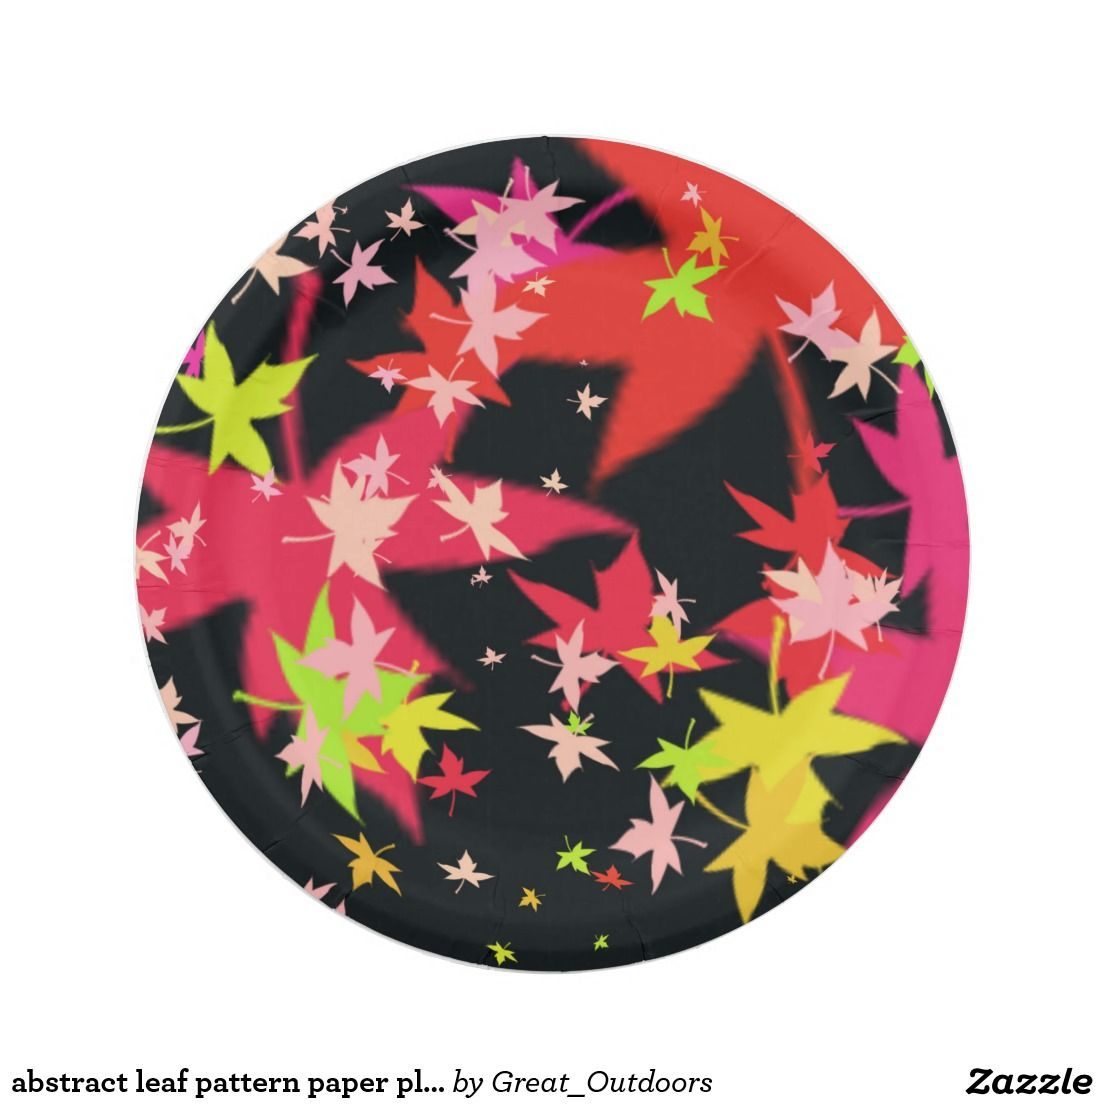 abstract leaf pattern paper plates